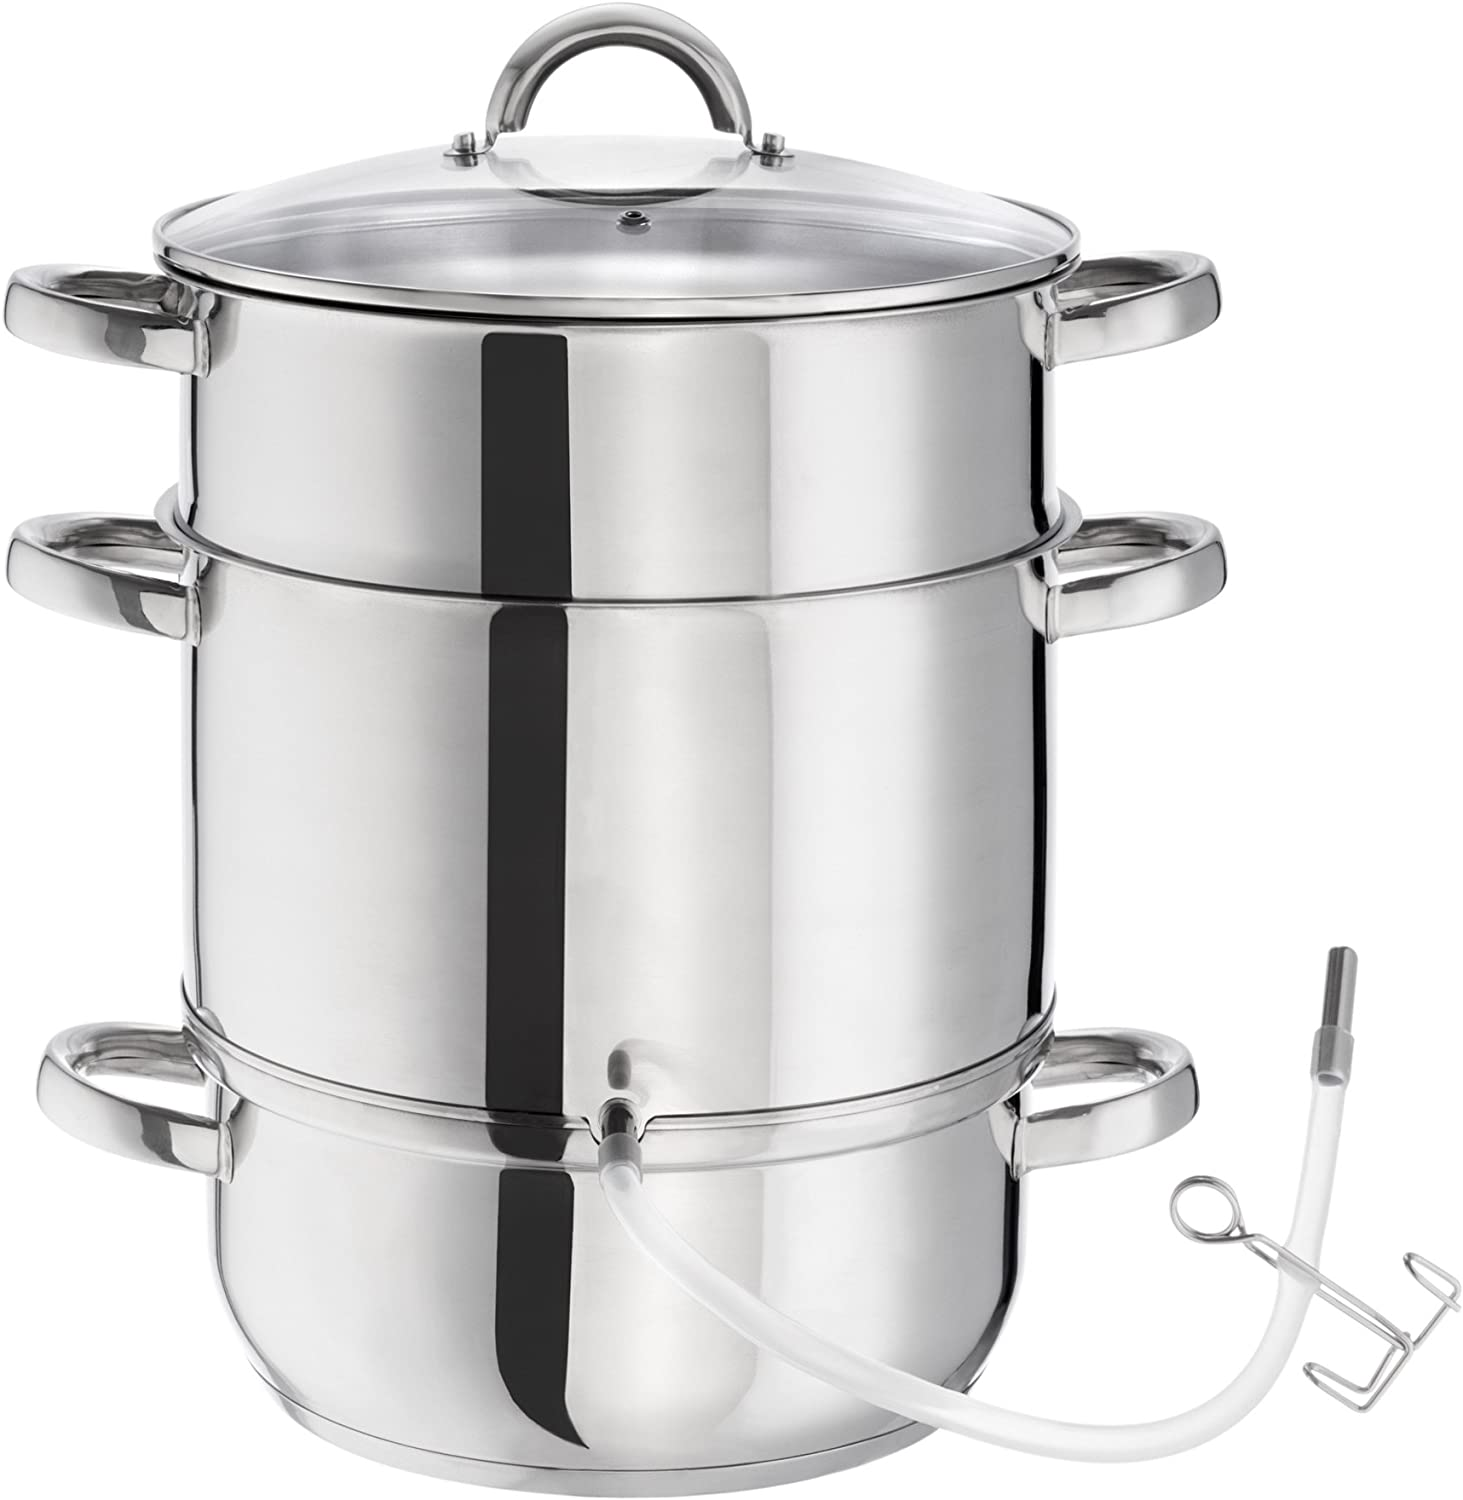 Torrex® 30280 steam juicer Stainless